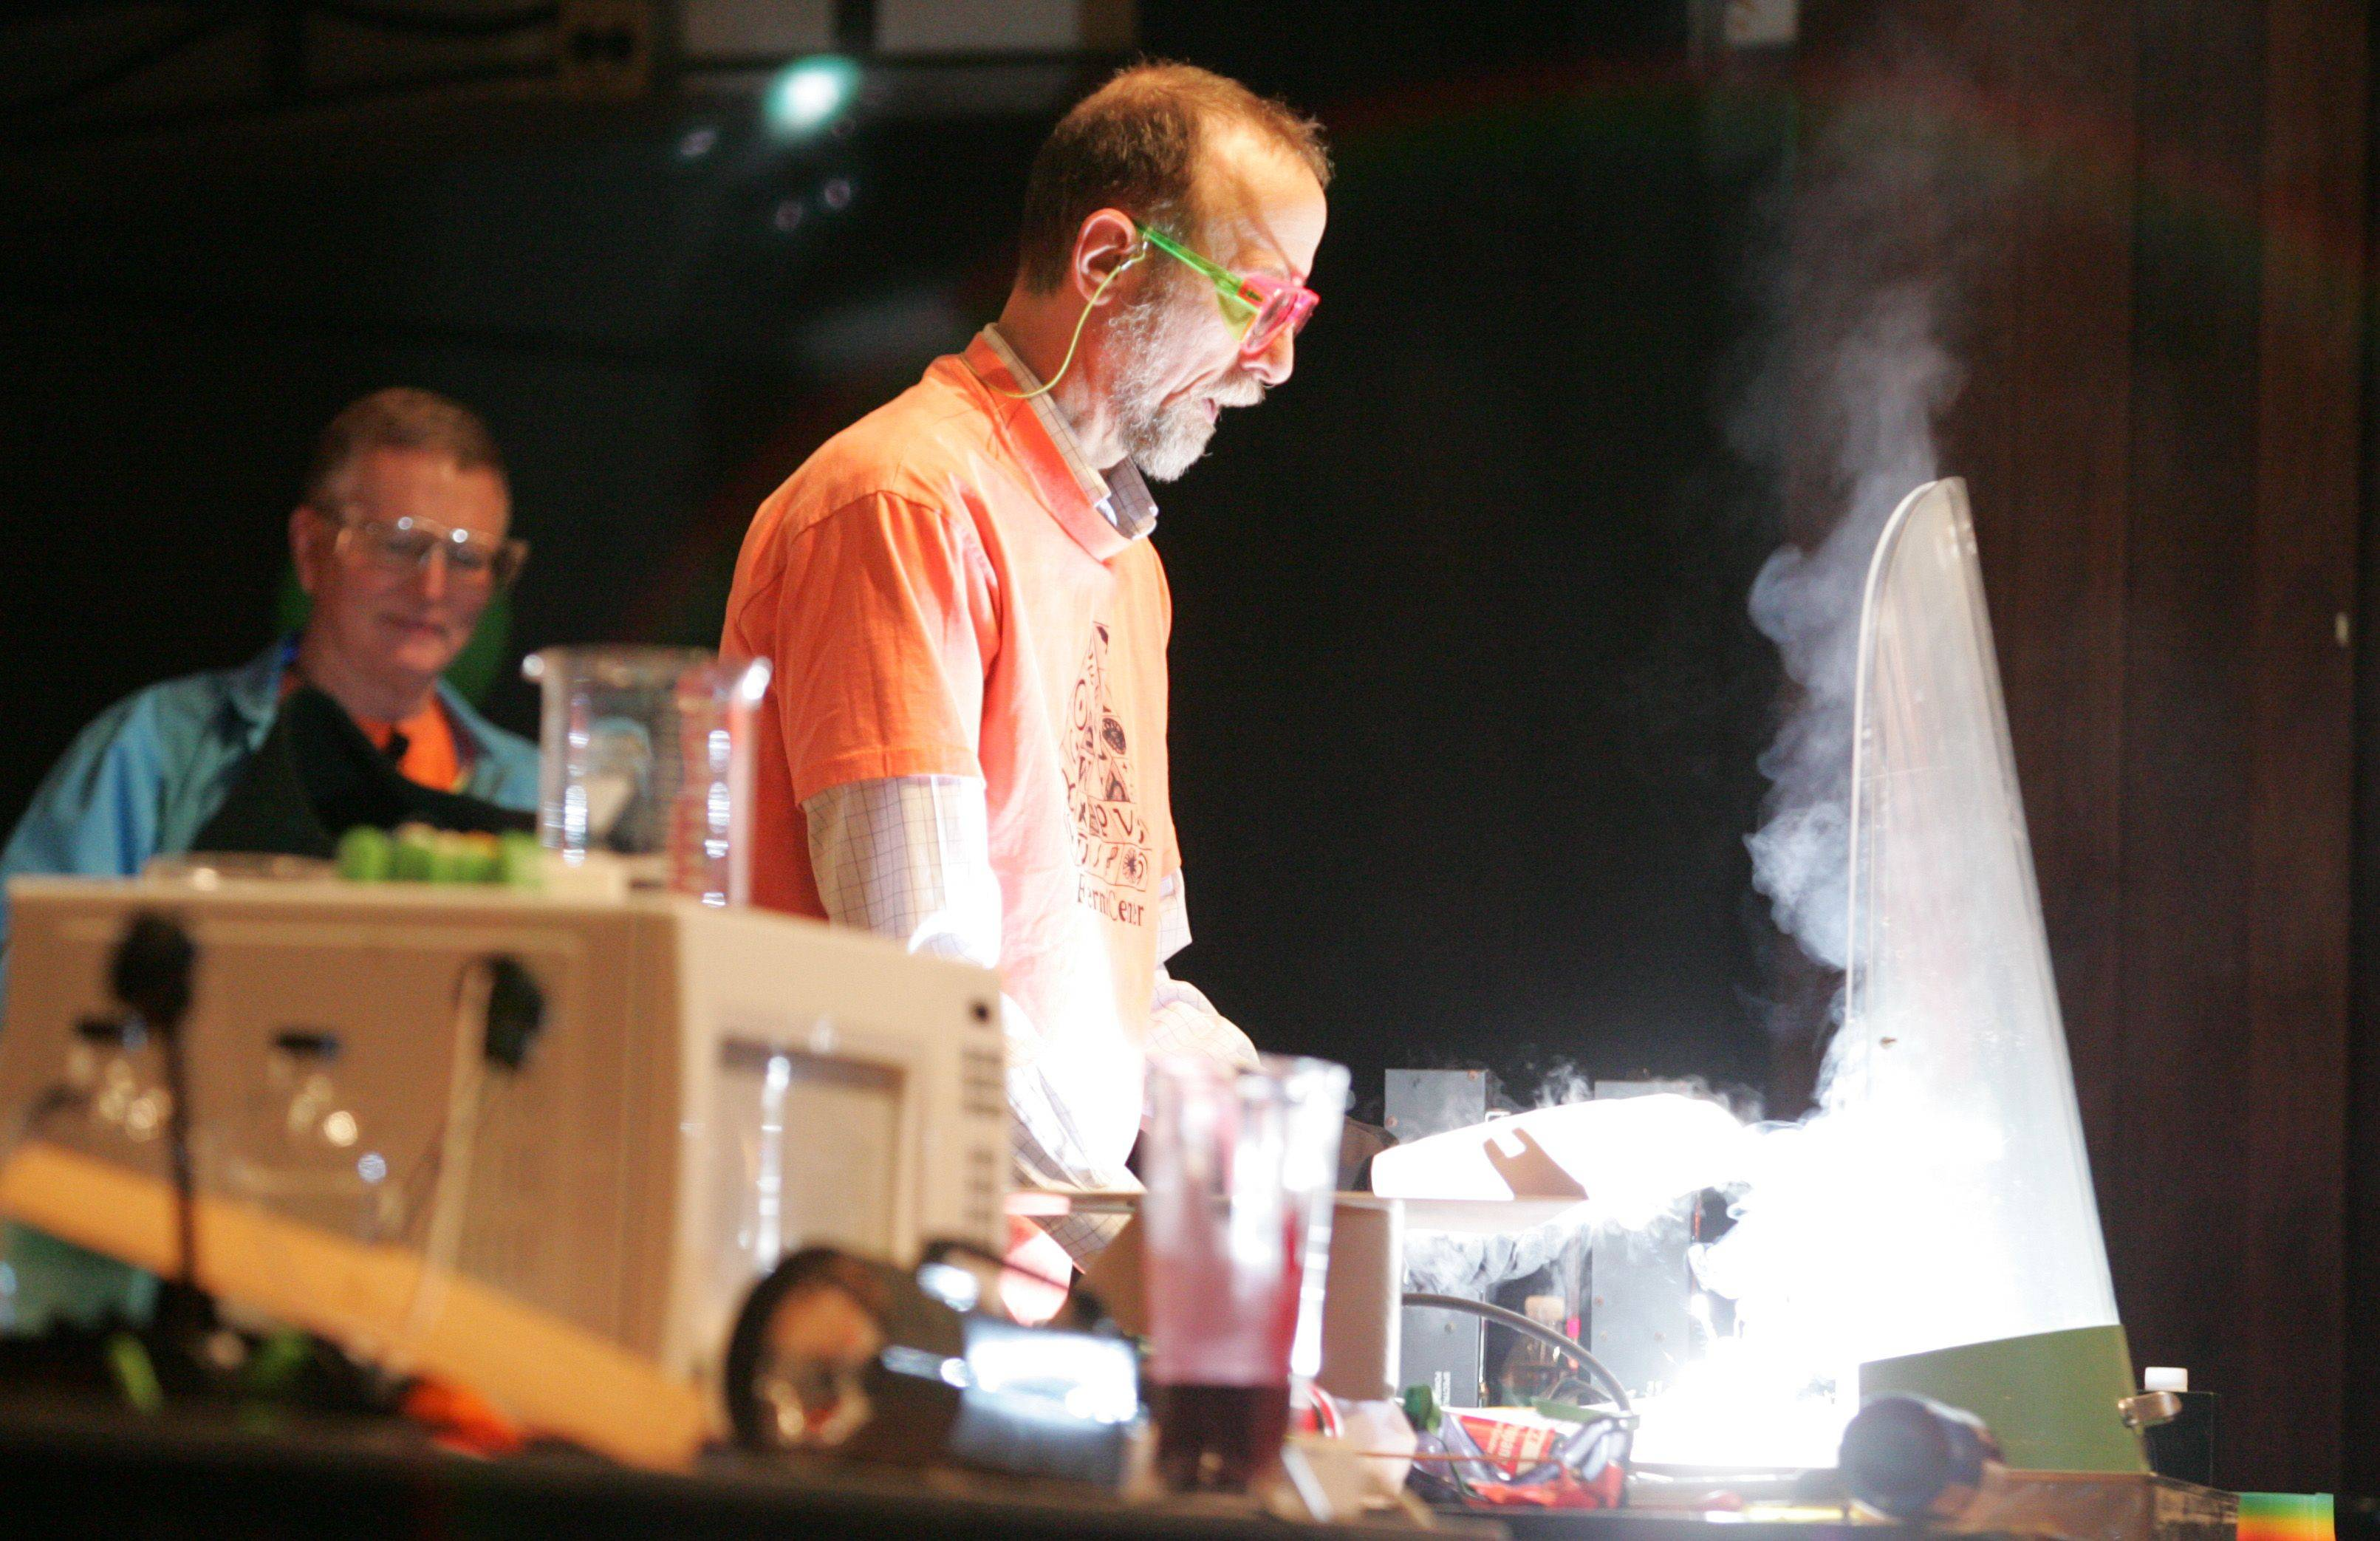 Lee Marek of the University of Illinois at Chicago creates a blinding white light for the crowd as he burns magnesium surrounded by dry ice.